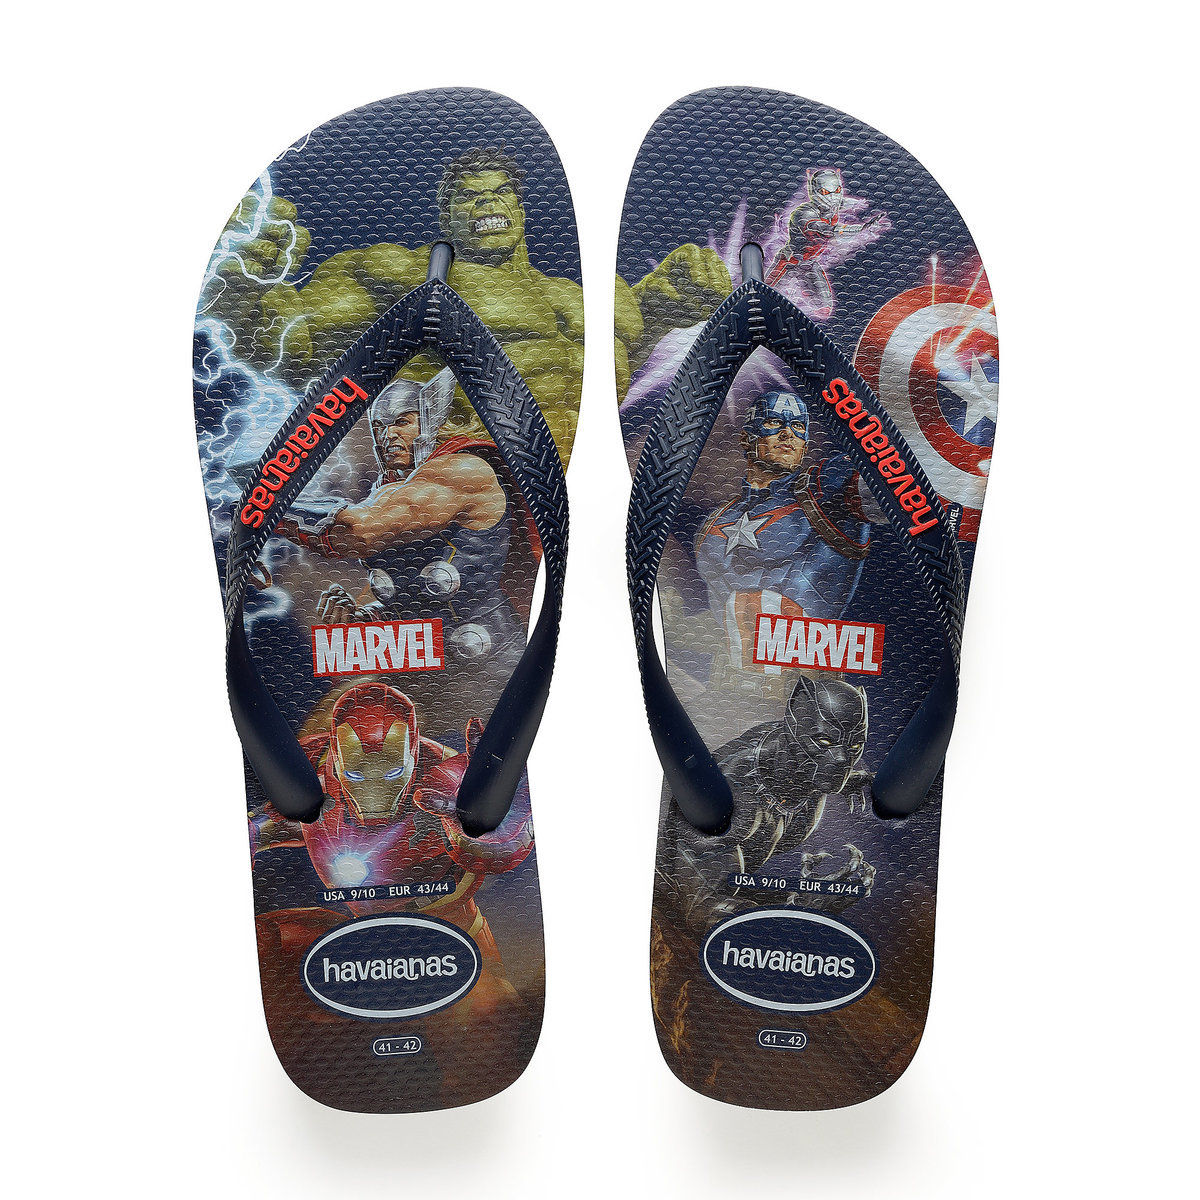 330f1dfcc Product Image of Marvel Avengers Flip Flops for Kids by Havaianas   1